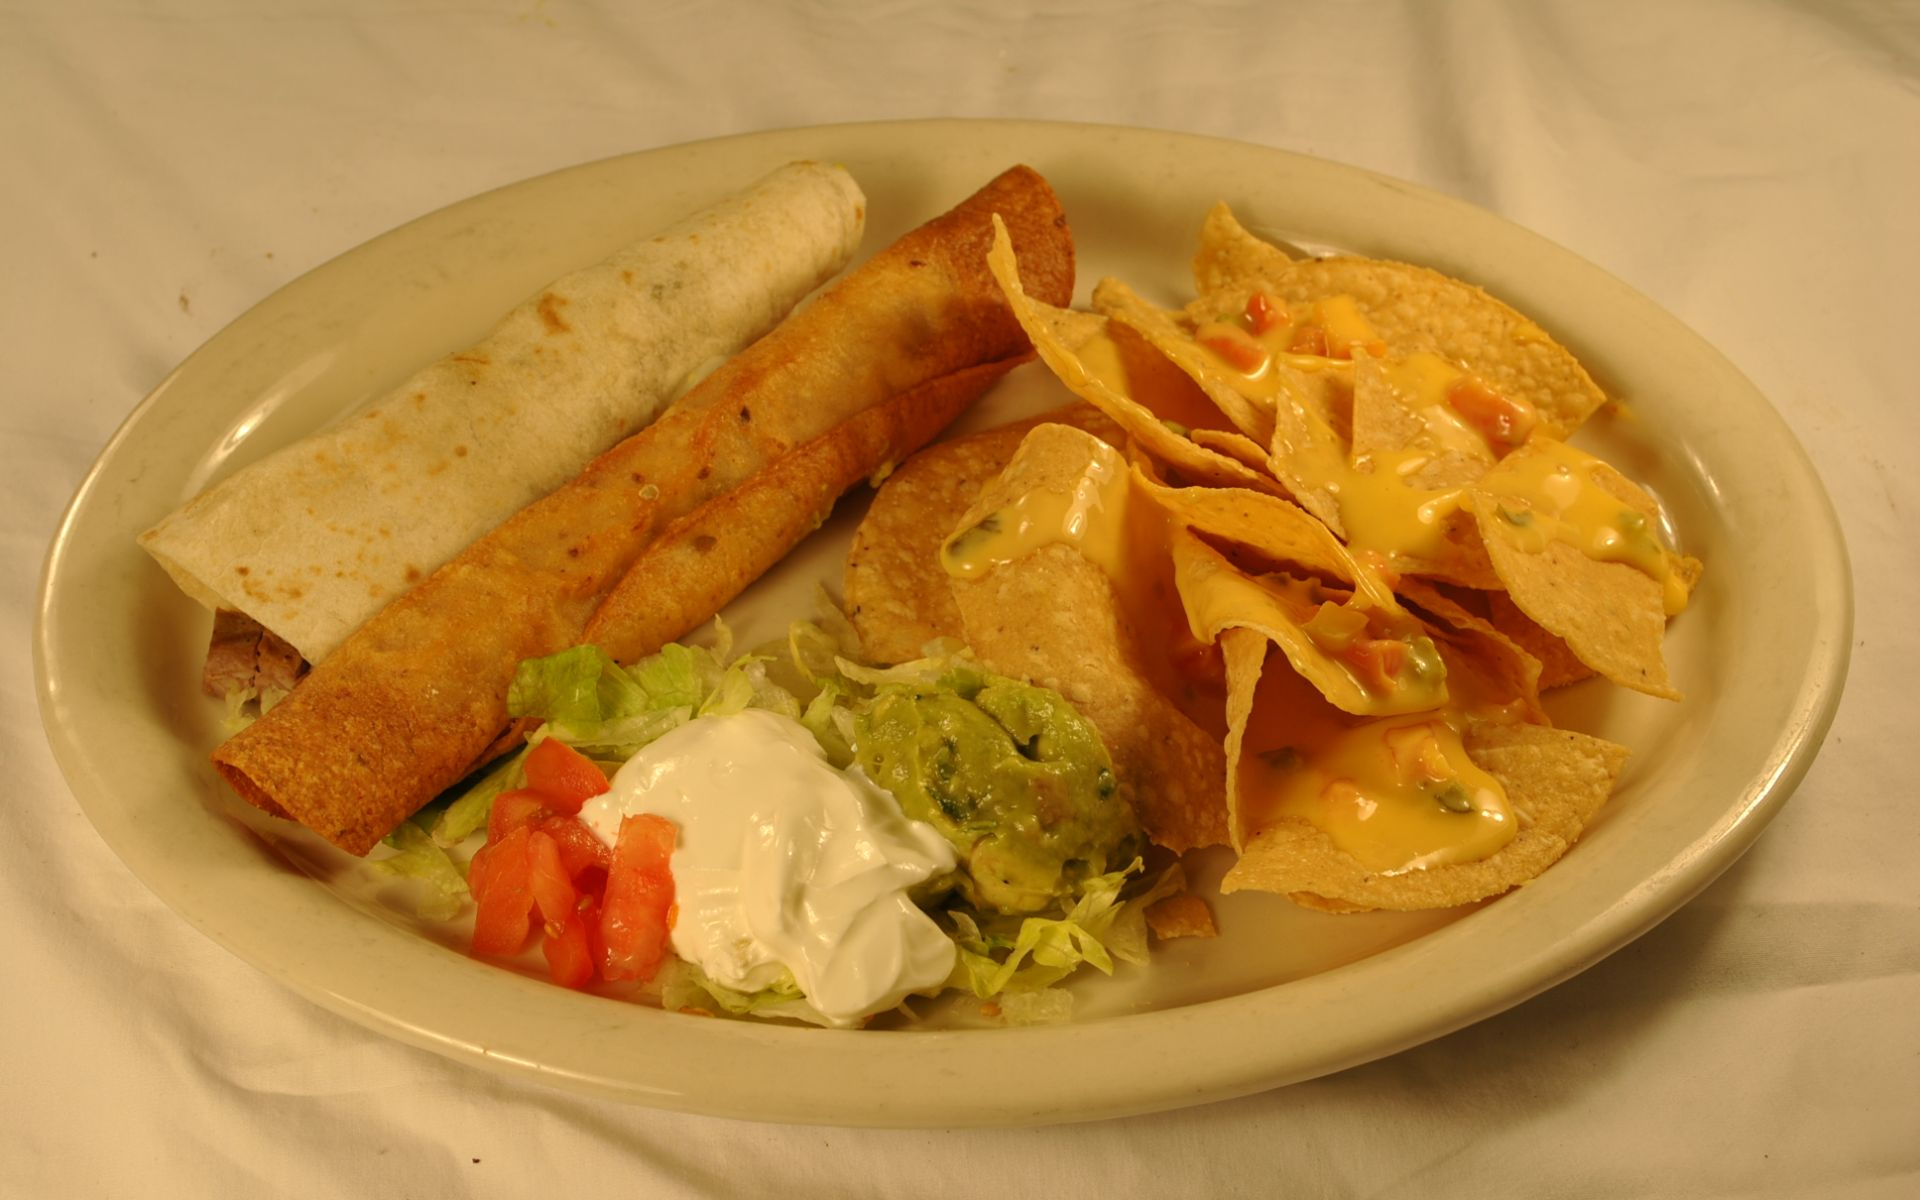 Taquitos on a plate with a side of nachos, sour cream, tomatoes and guacamole